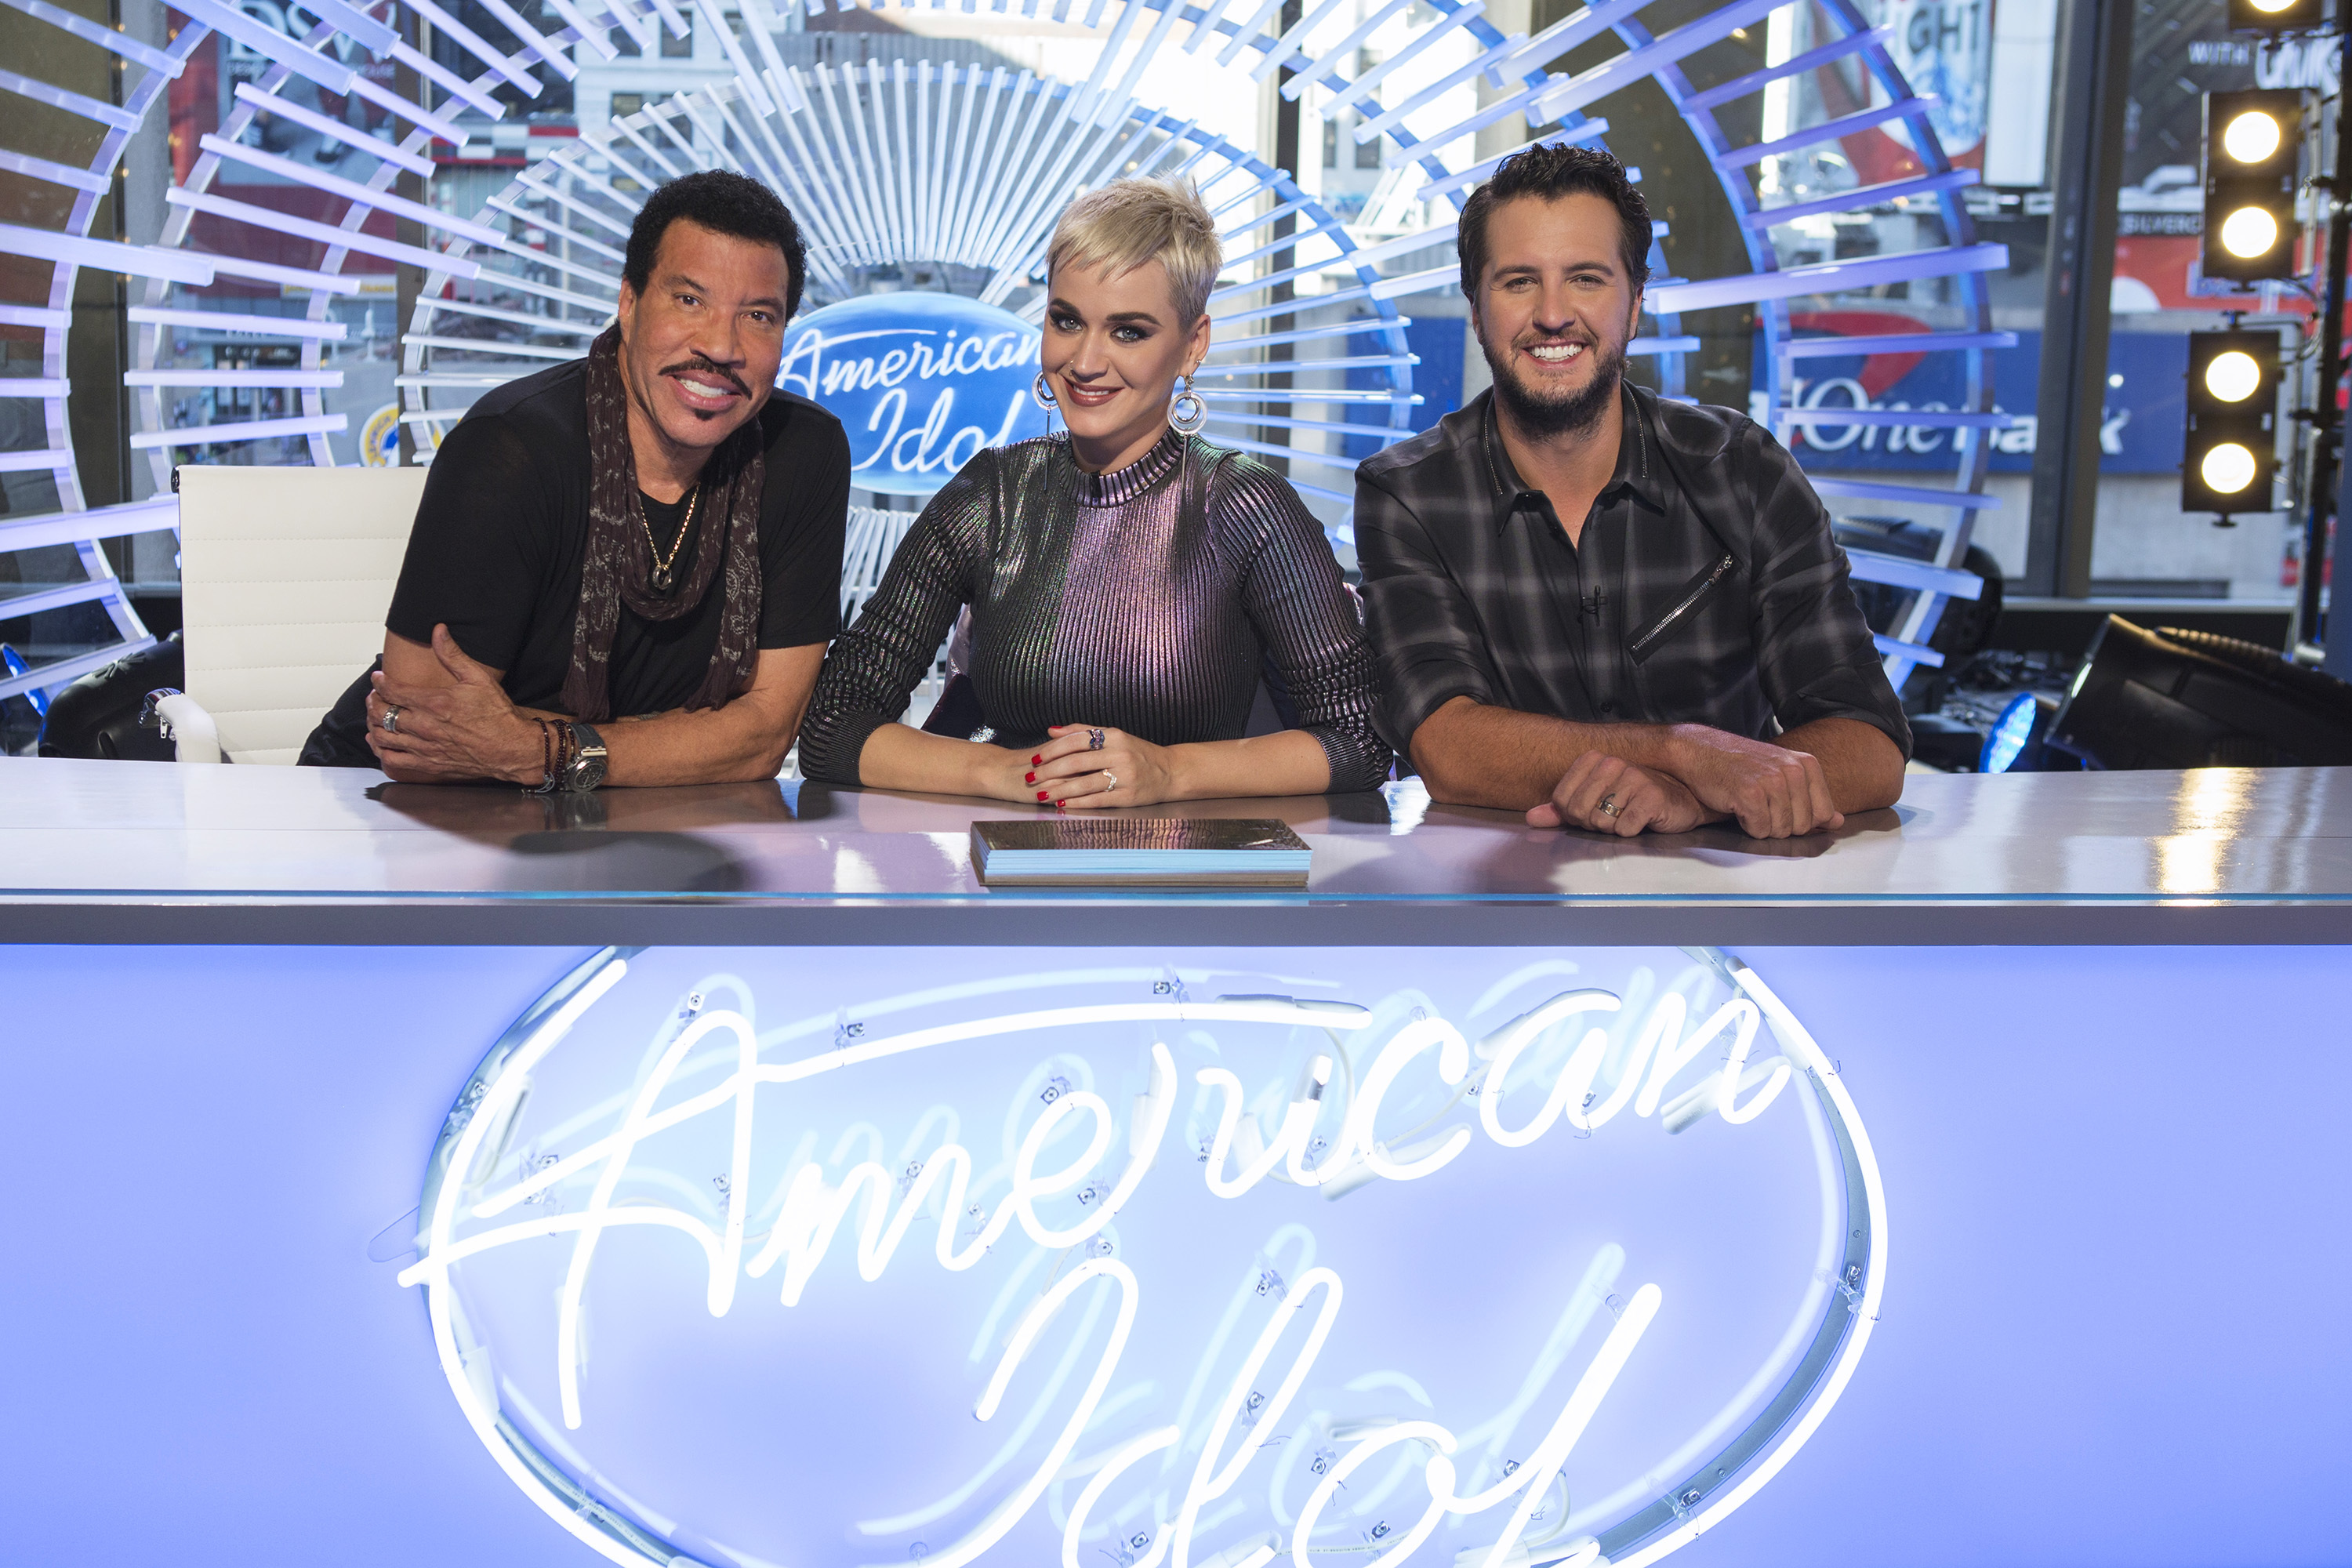 """American Idol"" contestants are hooking up behind the scenes"